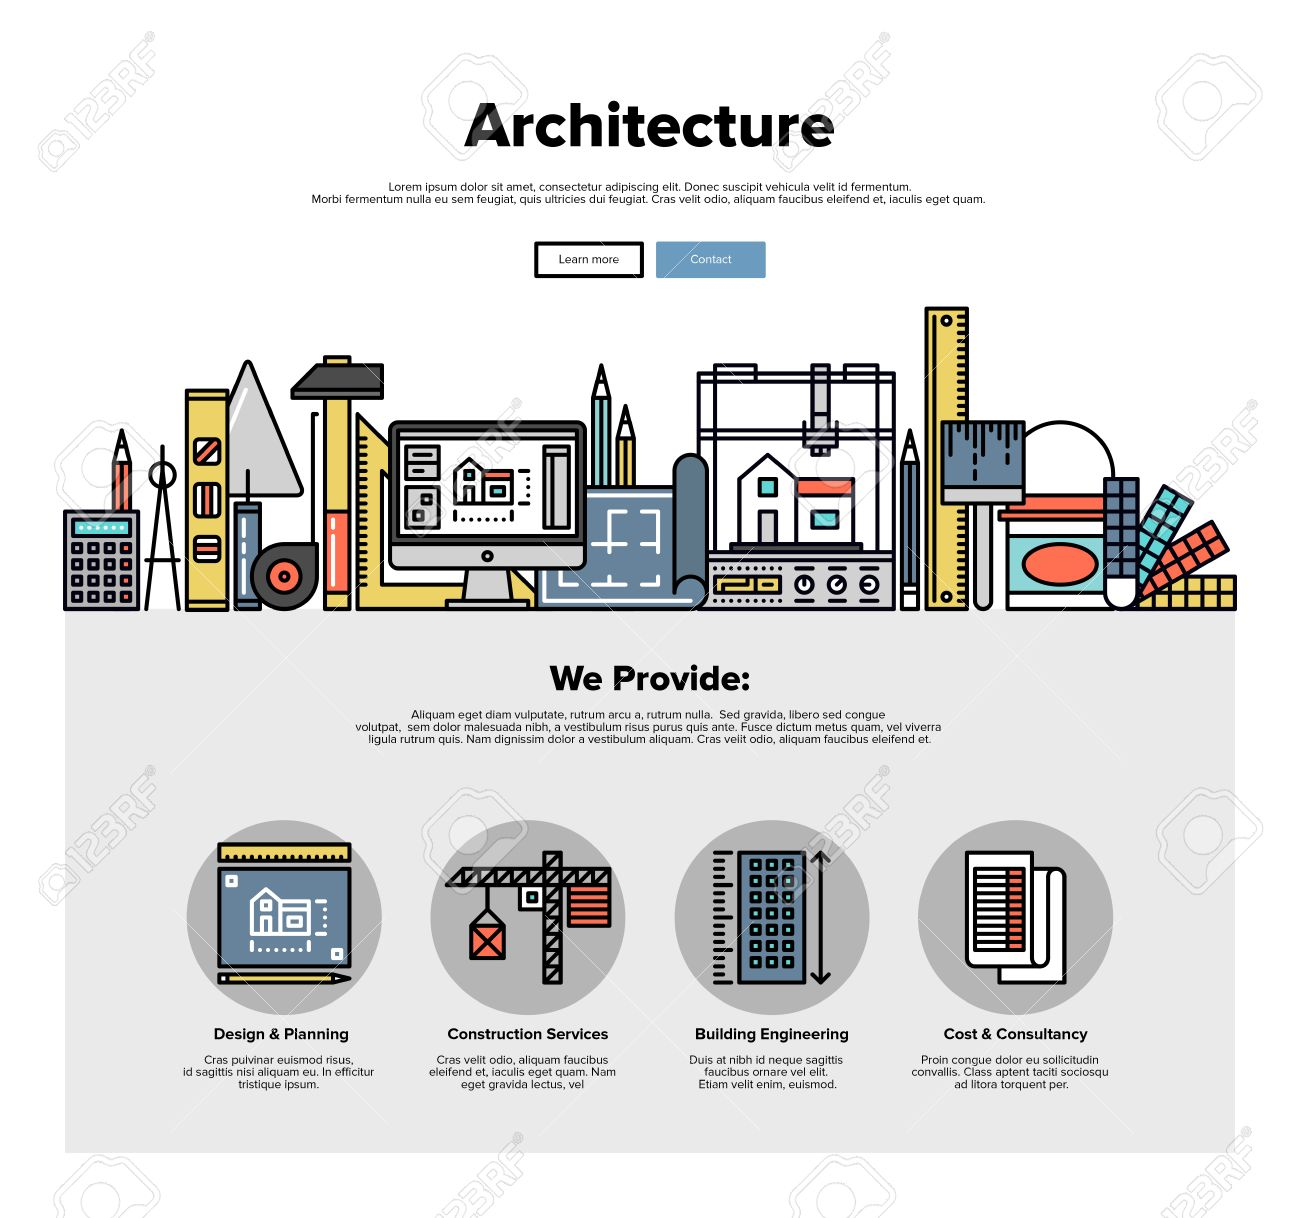 Architecture Design Template unique architecture design template pack from serif com for